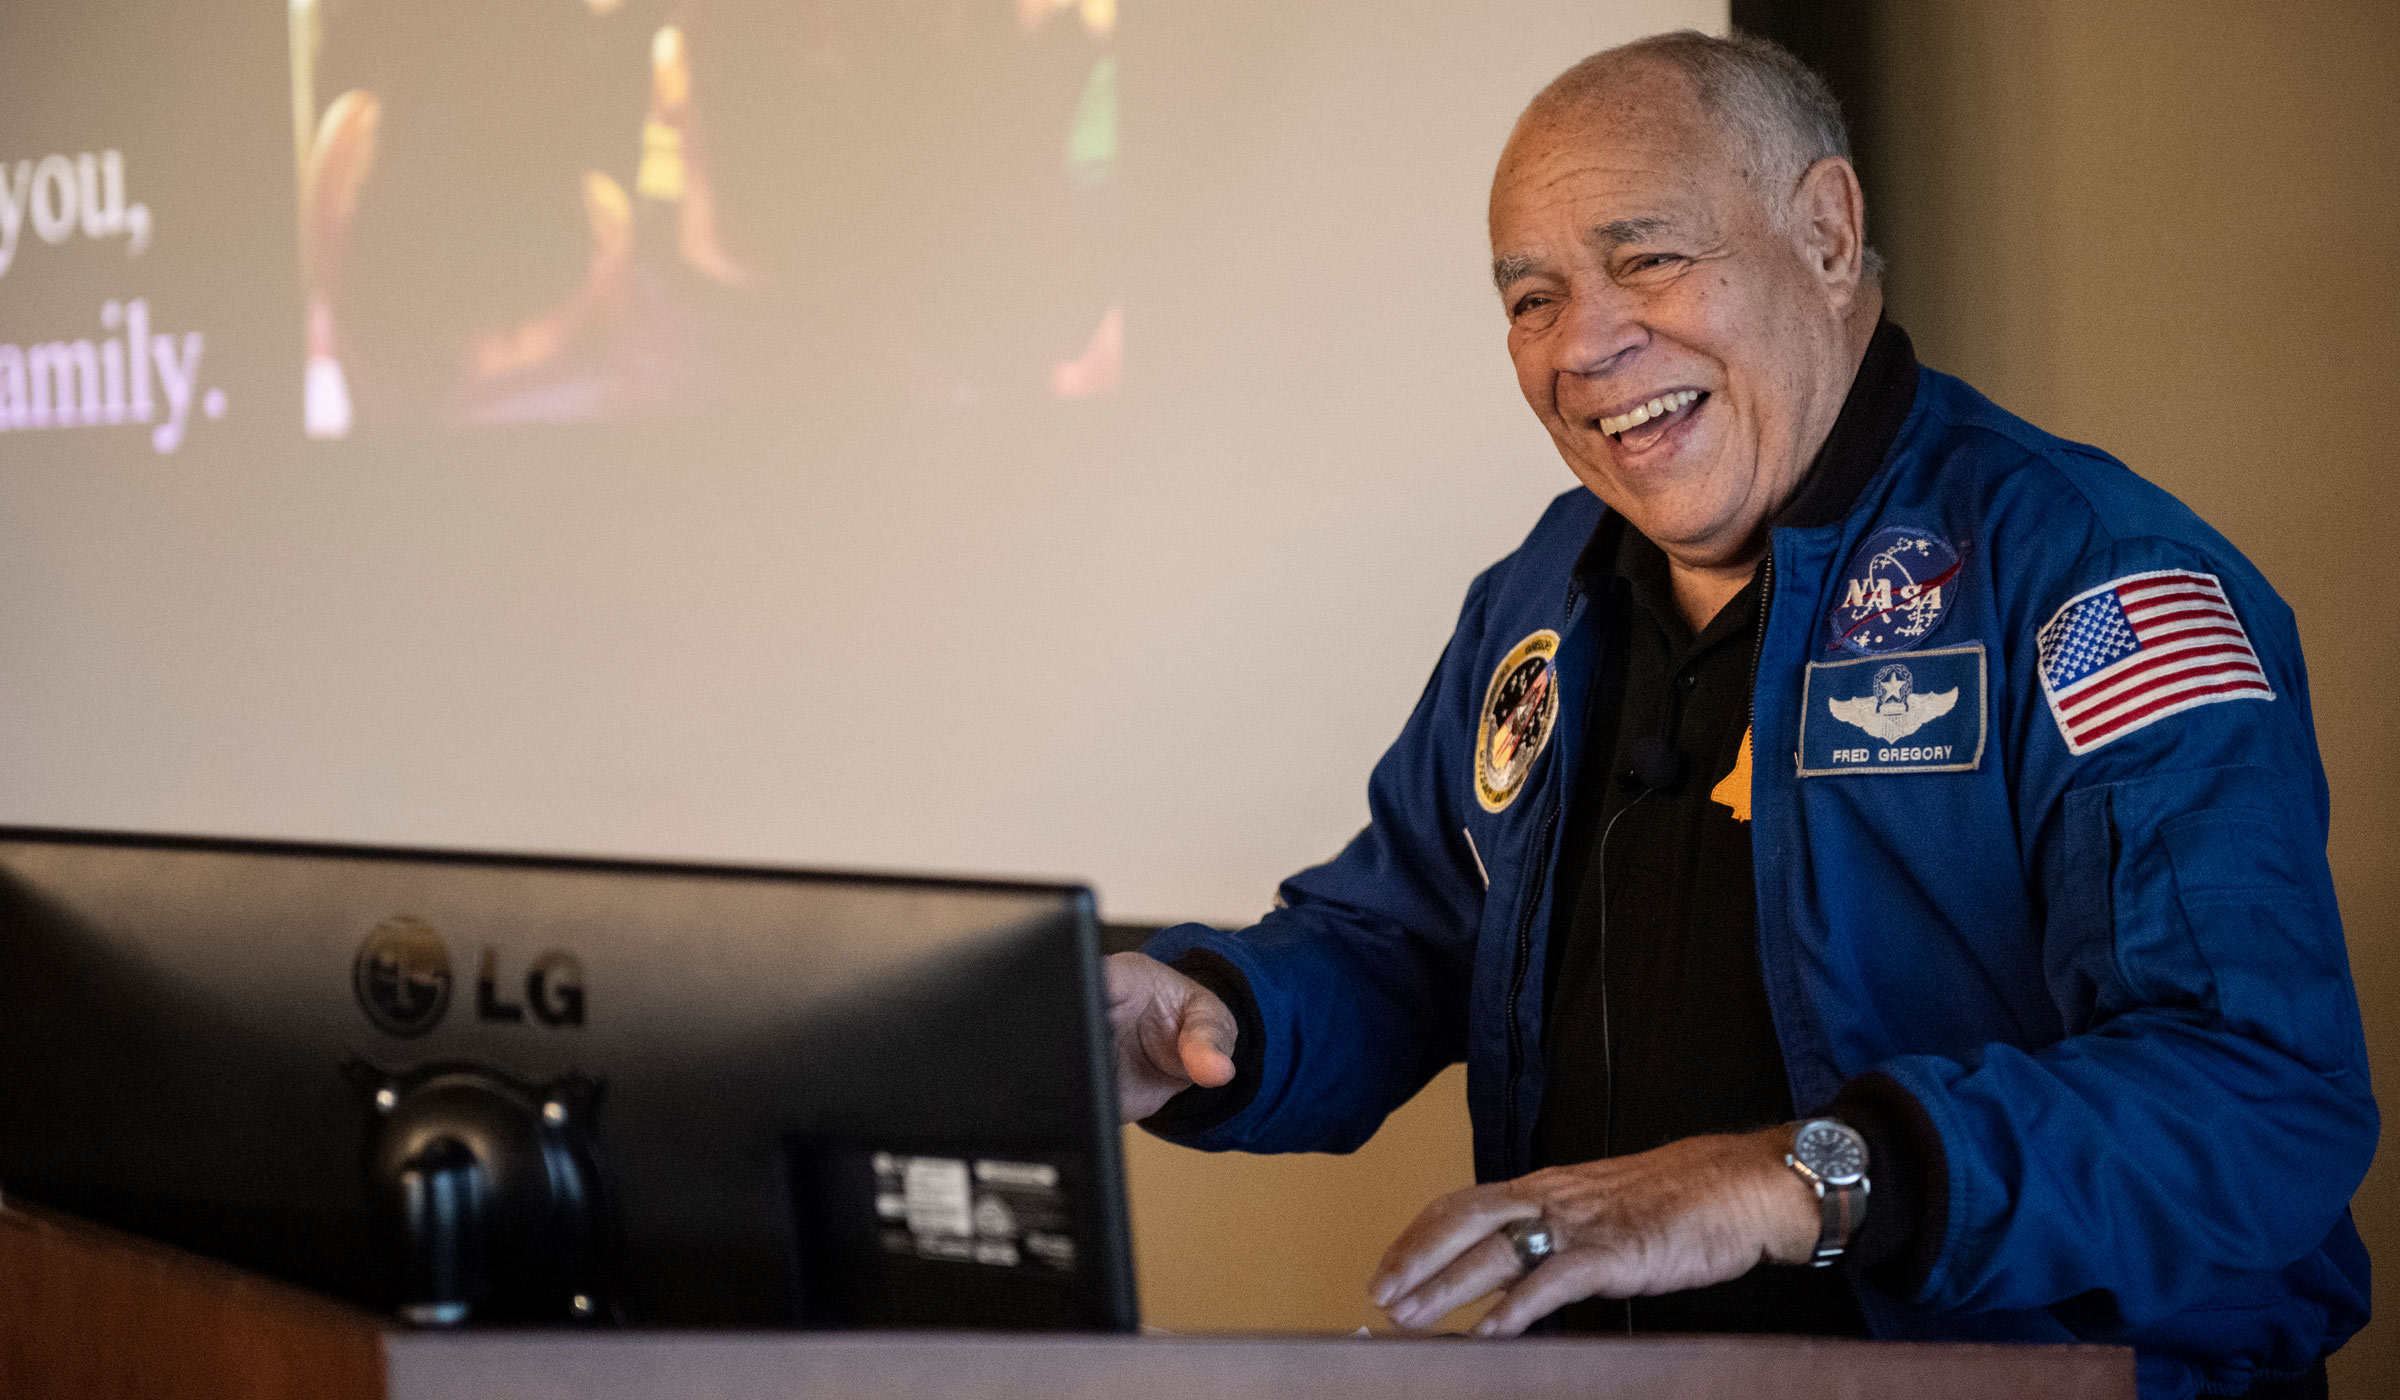 Astronaut Fred Gregory, a former NASA deputy administrator, test pilot, manager of flight safety programs and launch support operations speaks in Griffis.